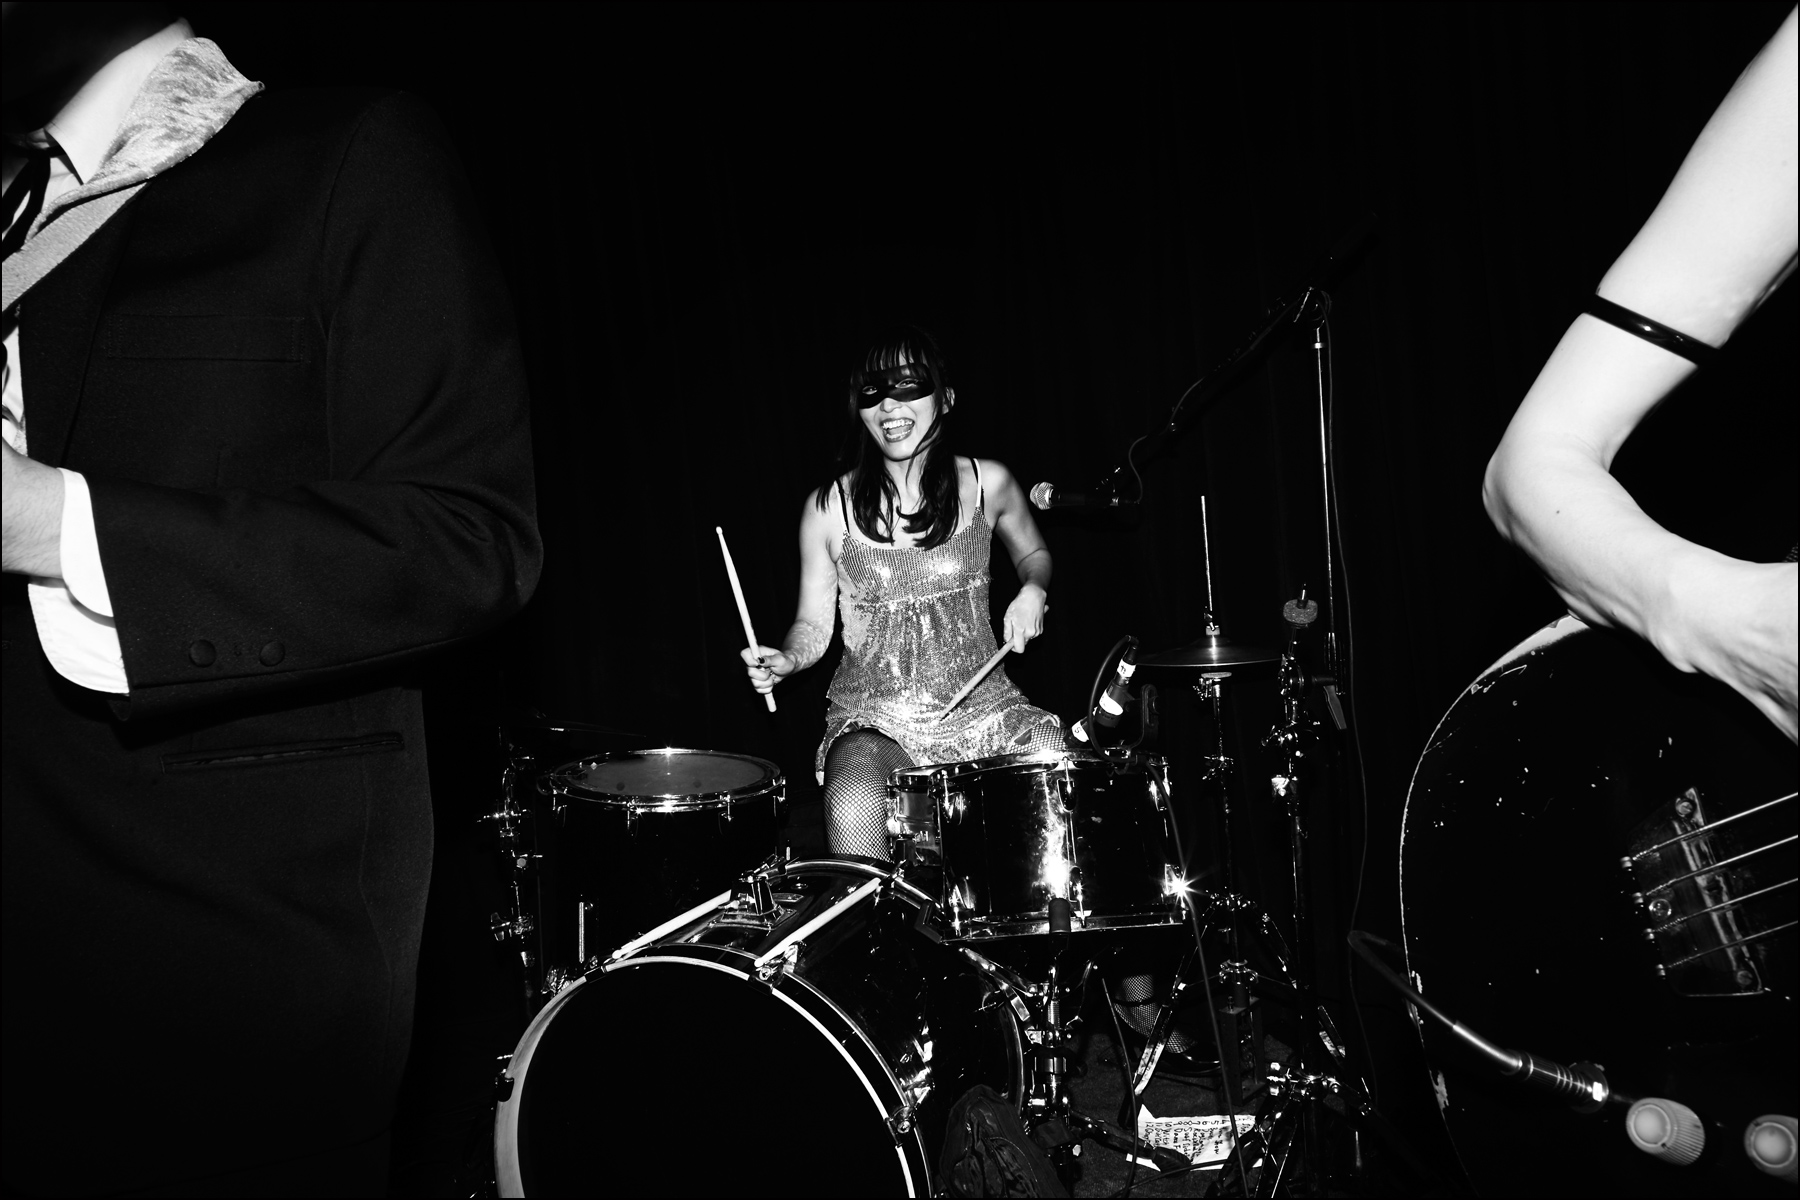 Drummer Saori, from The Stompin' Riffraffs. Photographed onstage at Berlin in New York City by Alexander Thompson for Ponyboy magazine NY.